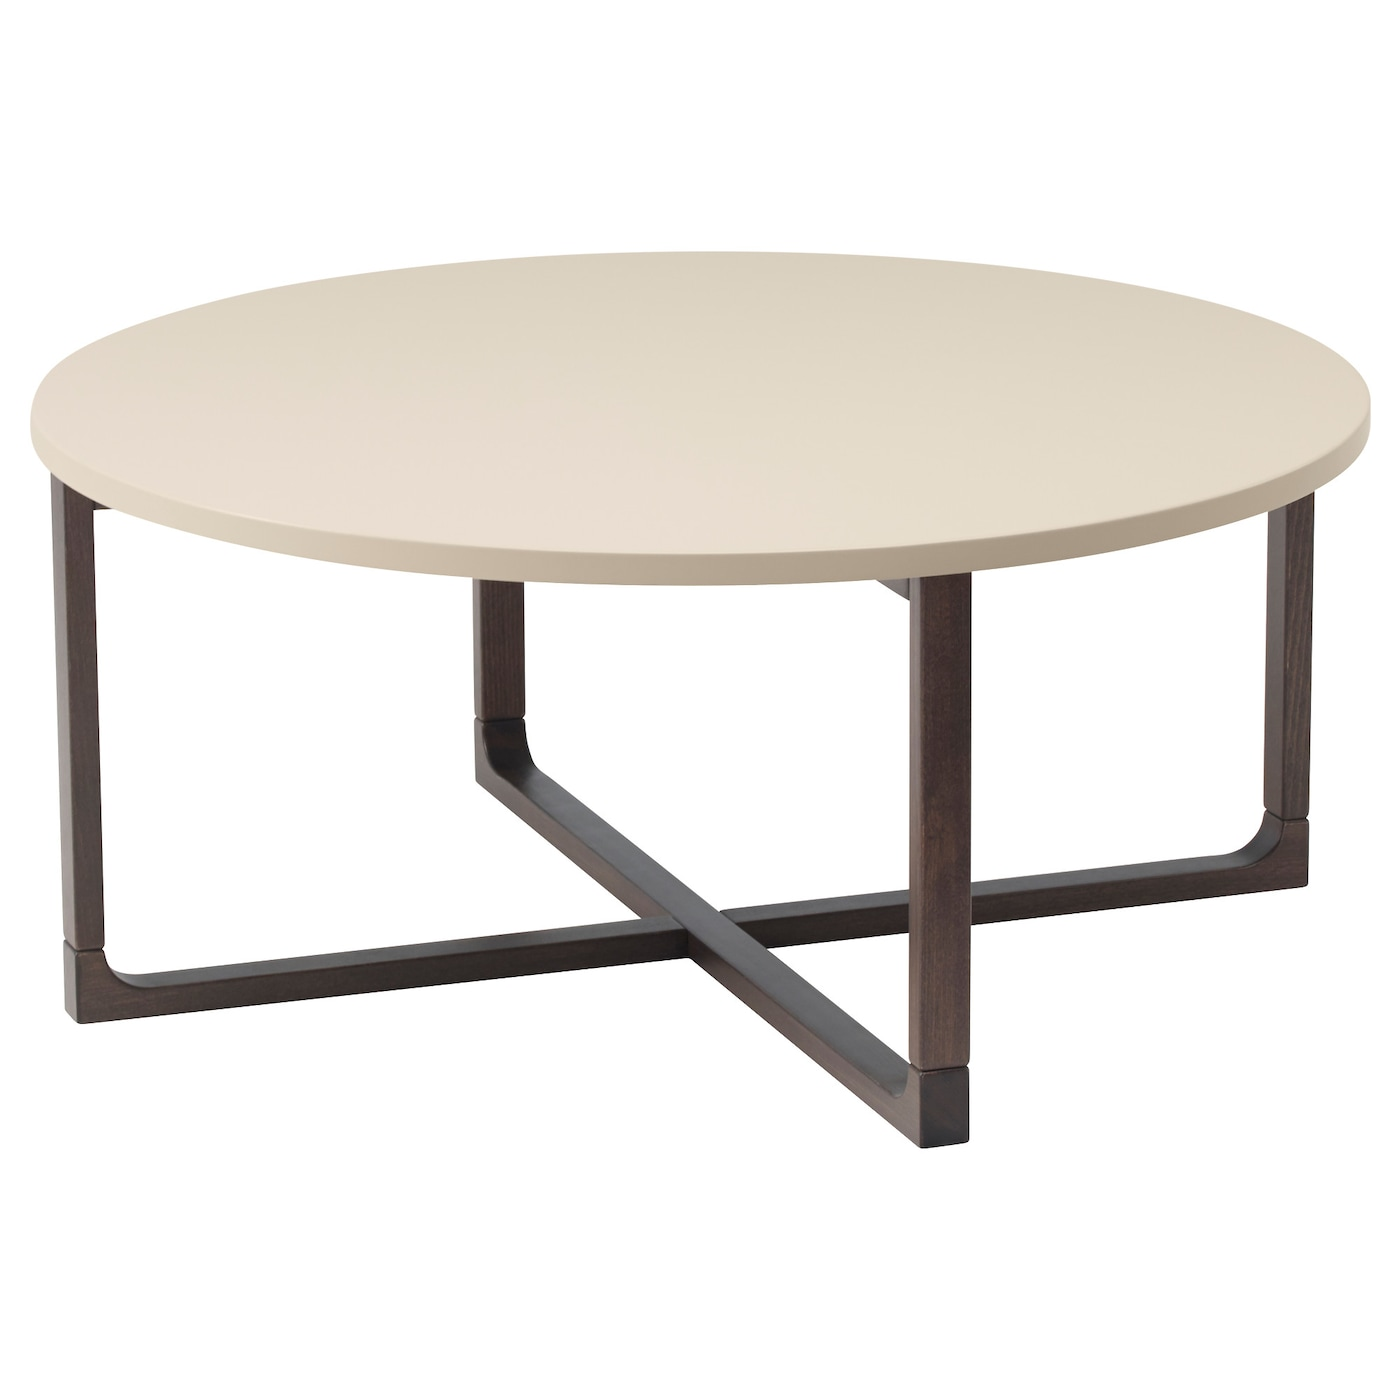 RISSNA Coffee table Beige 90 cm IKEA